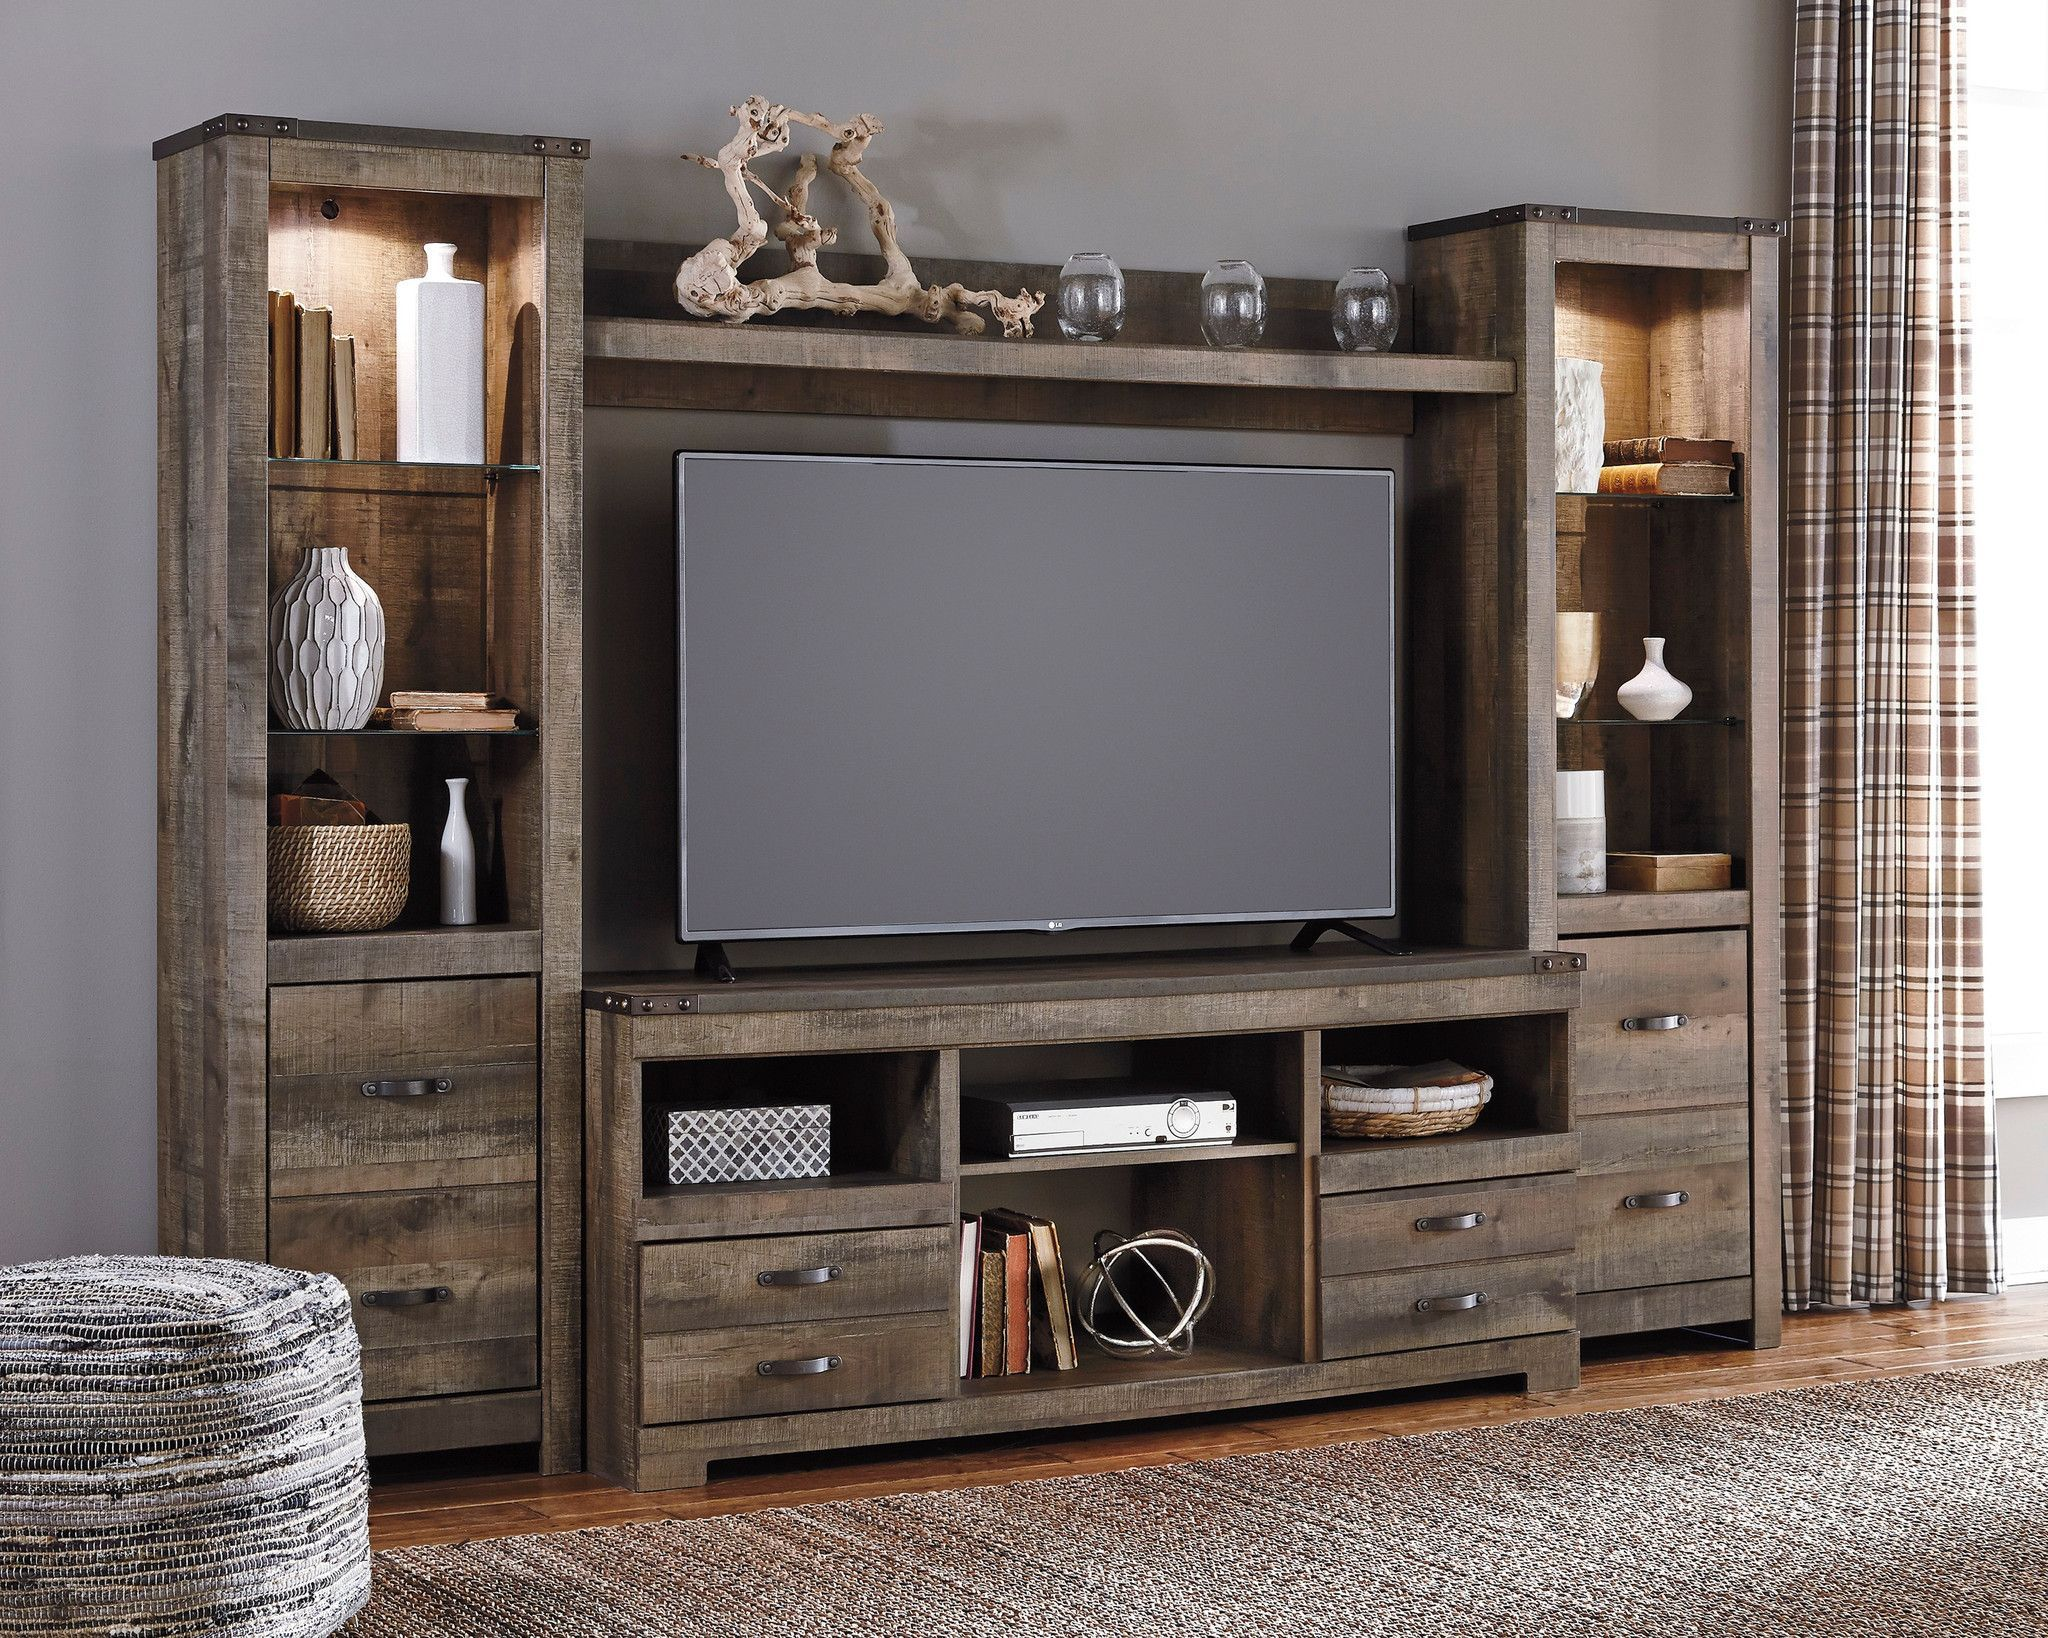 wooden wall from room white with finish combinations entertainment media hulsta under living tv fireplace wood elegant console electric unit enclosed center